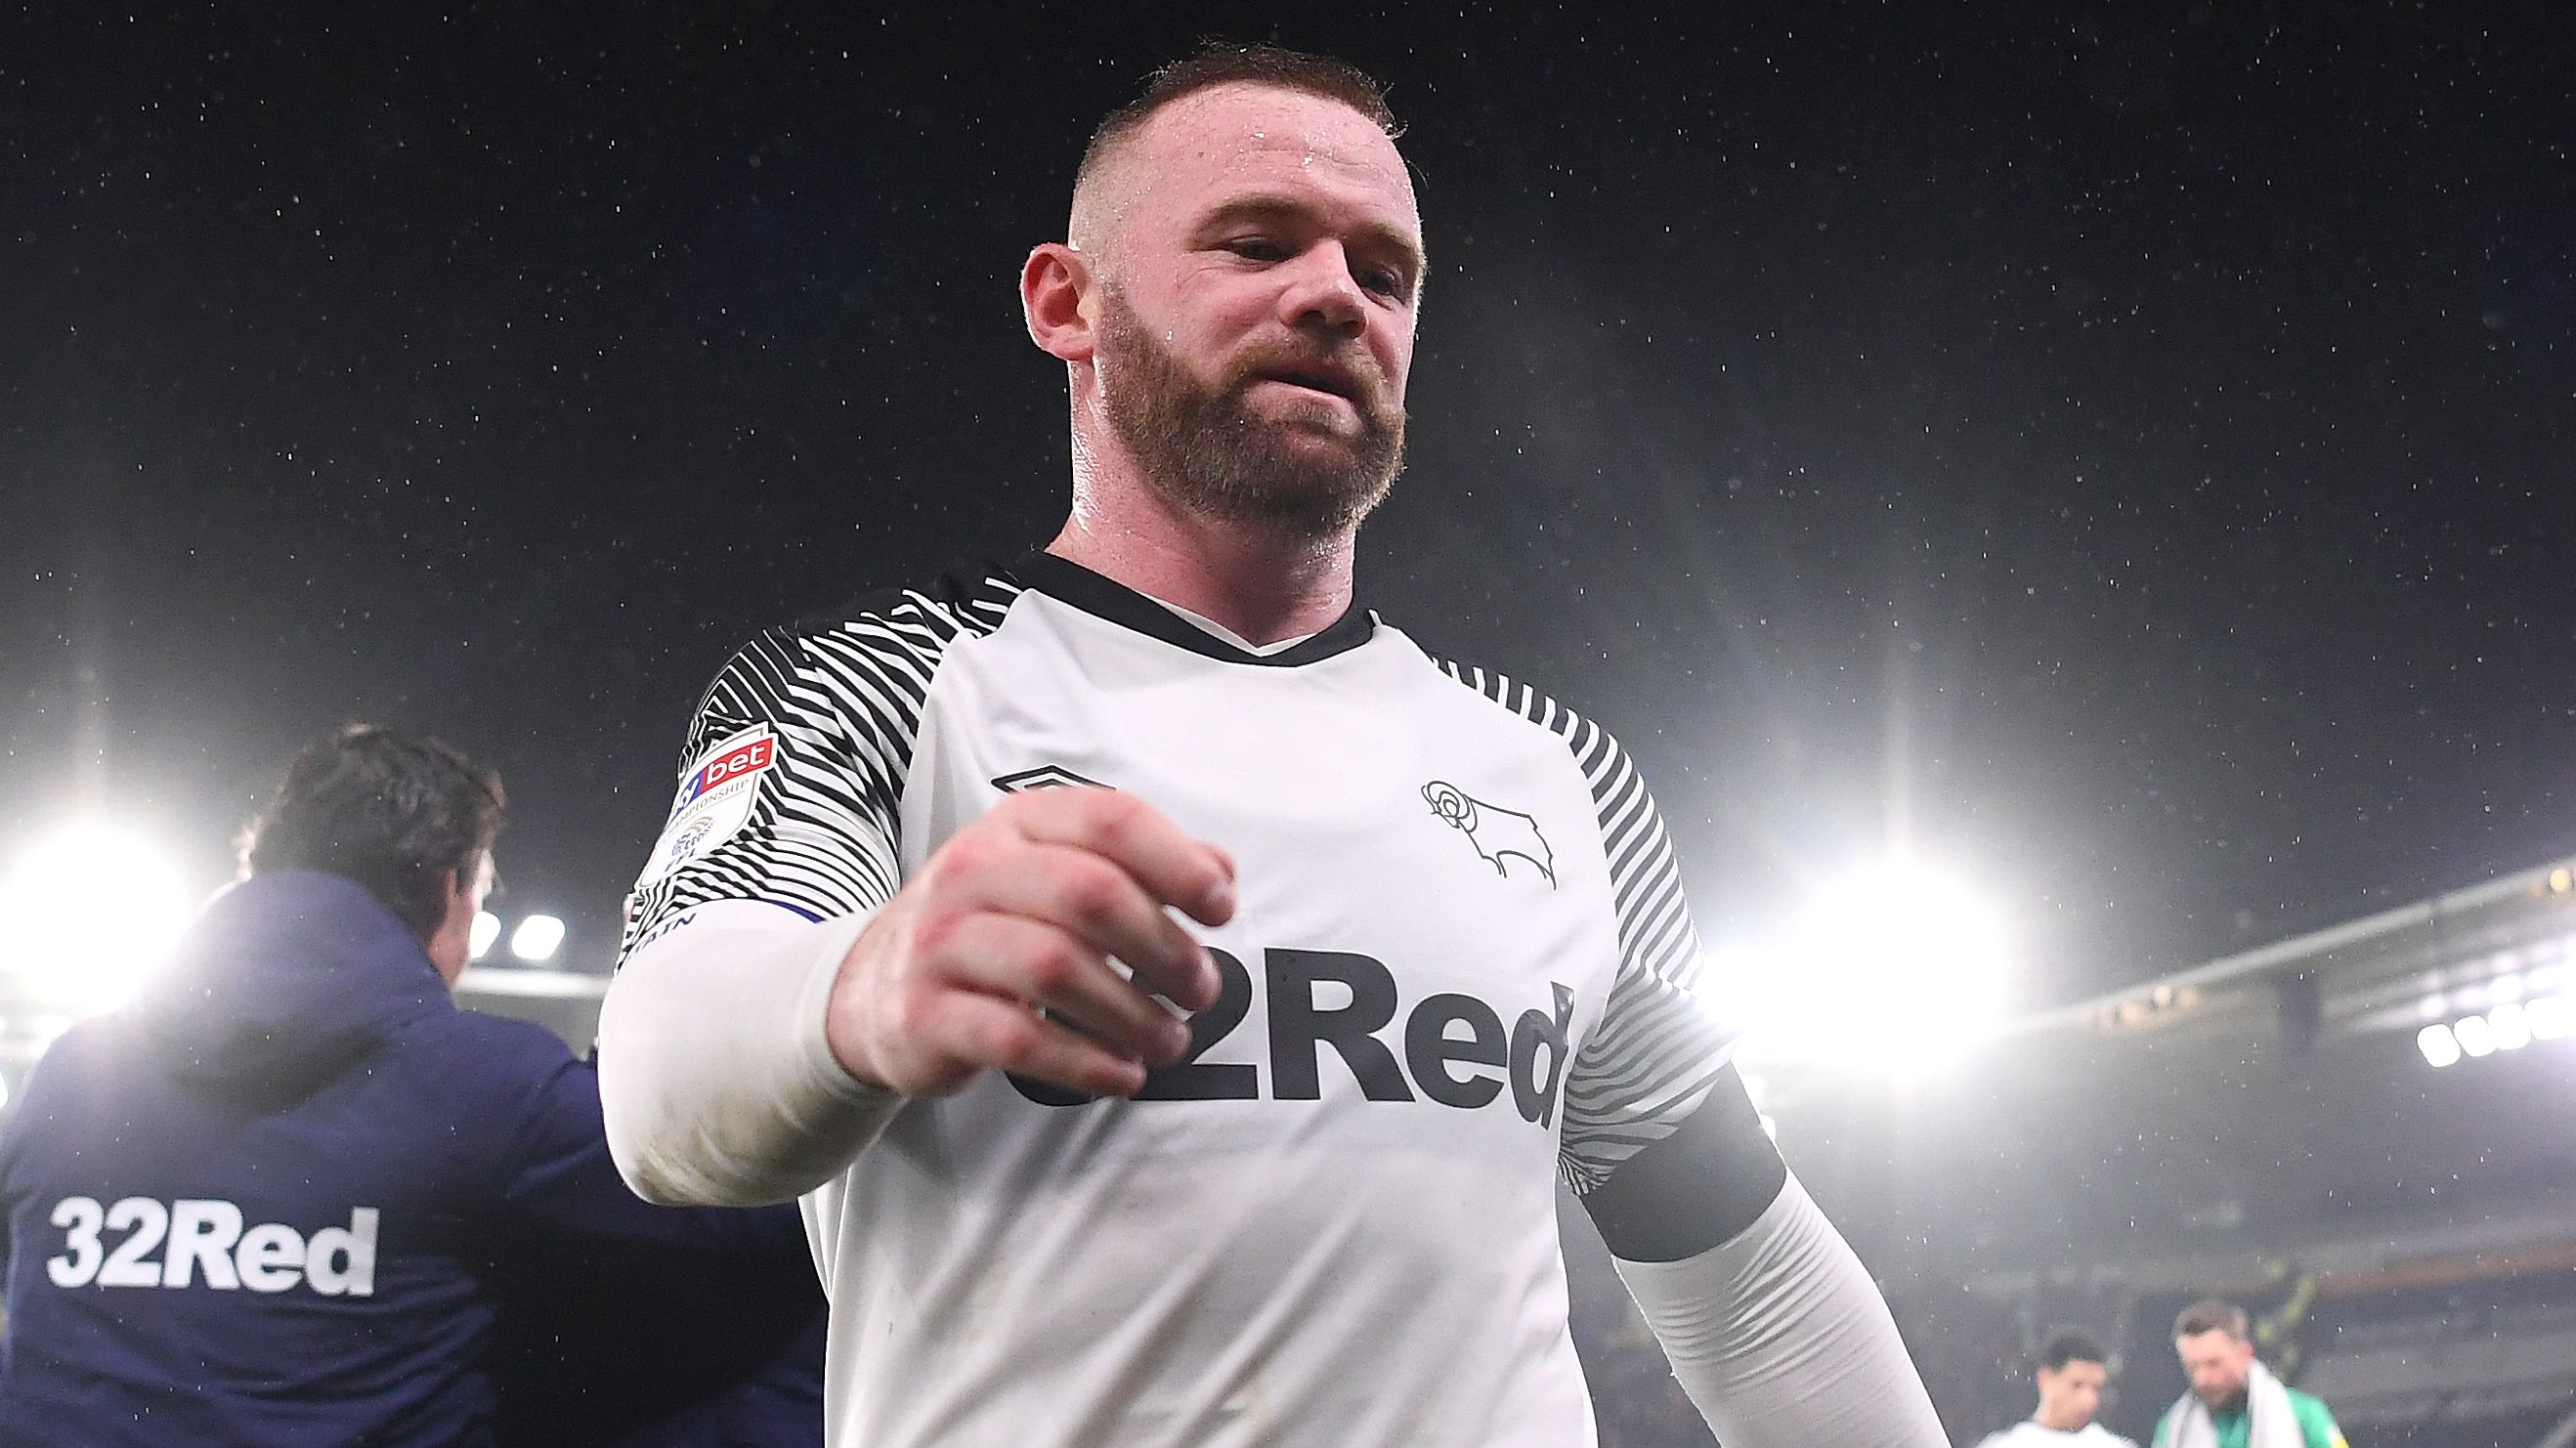 Football superstar Wayne Rooney reveals struggles with gambling